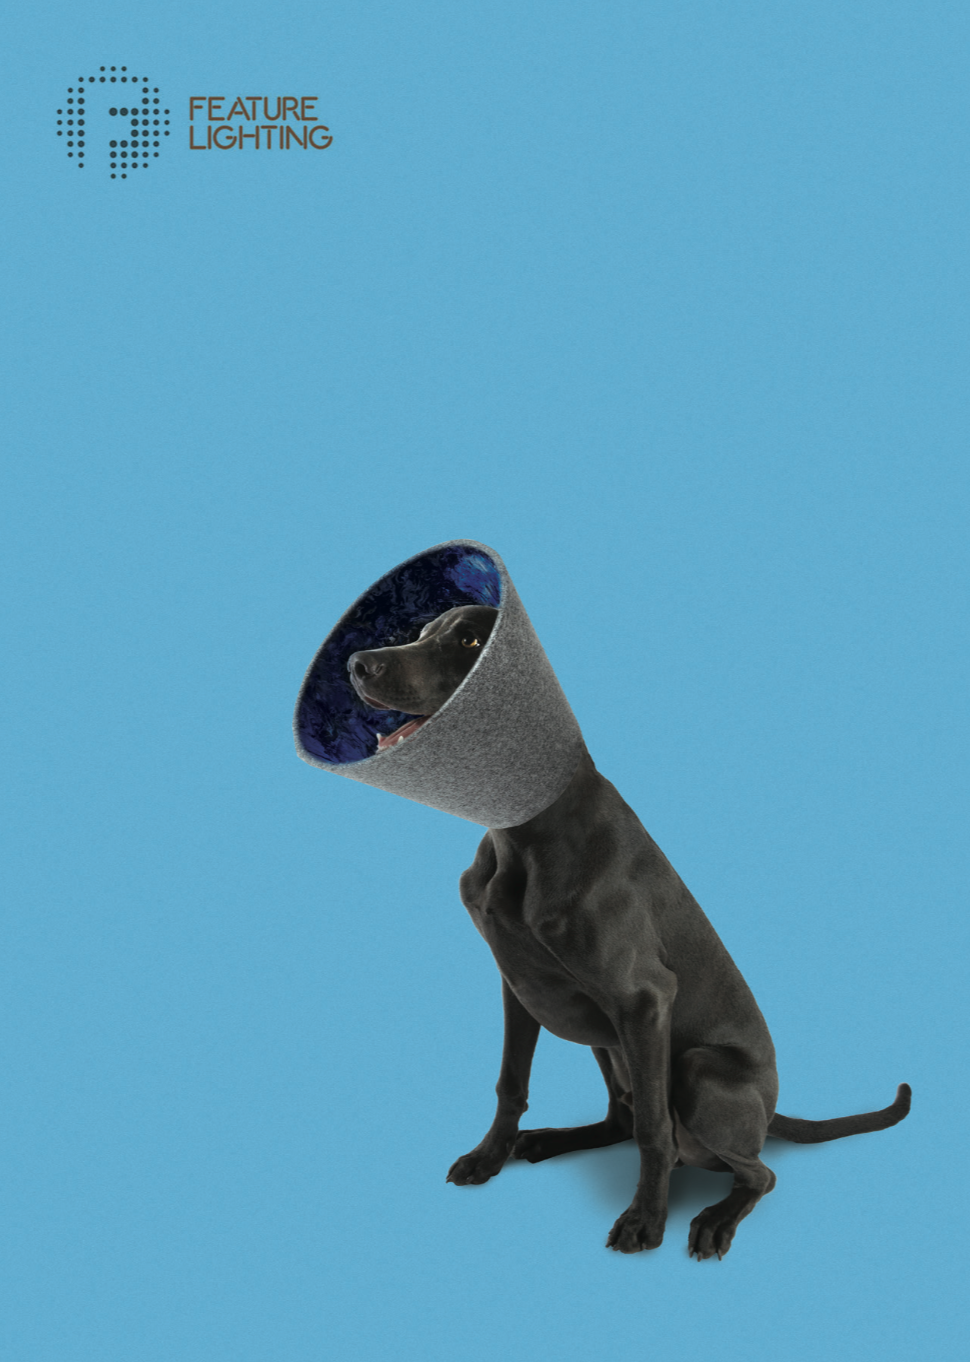 BLU - Our most energetic canine, Blu the Weimaraner configured a marbled blue interior on his shade to create his own namesake. Calm stylish grey wool on the outside + completely nuts on the inside!